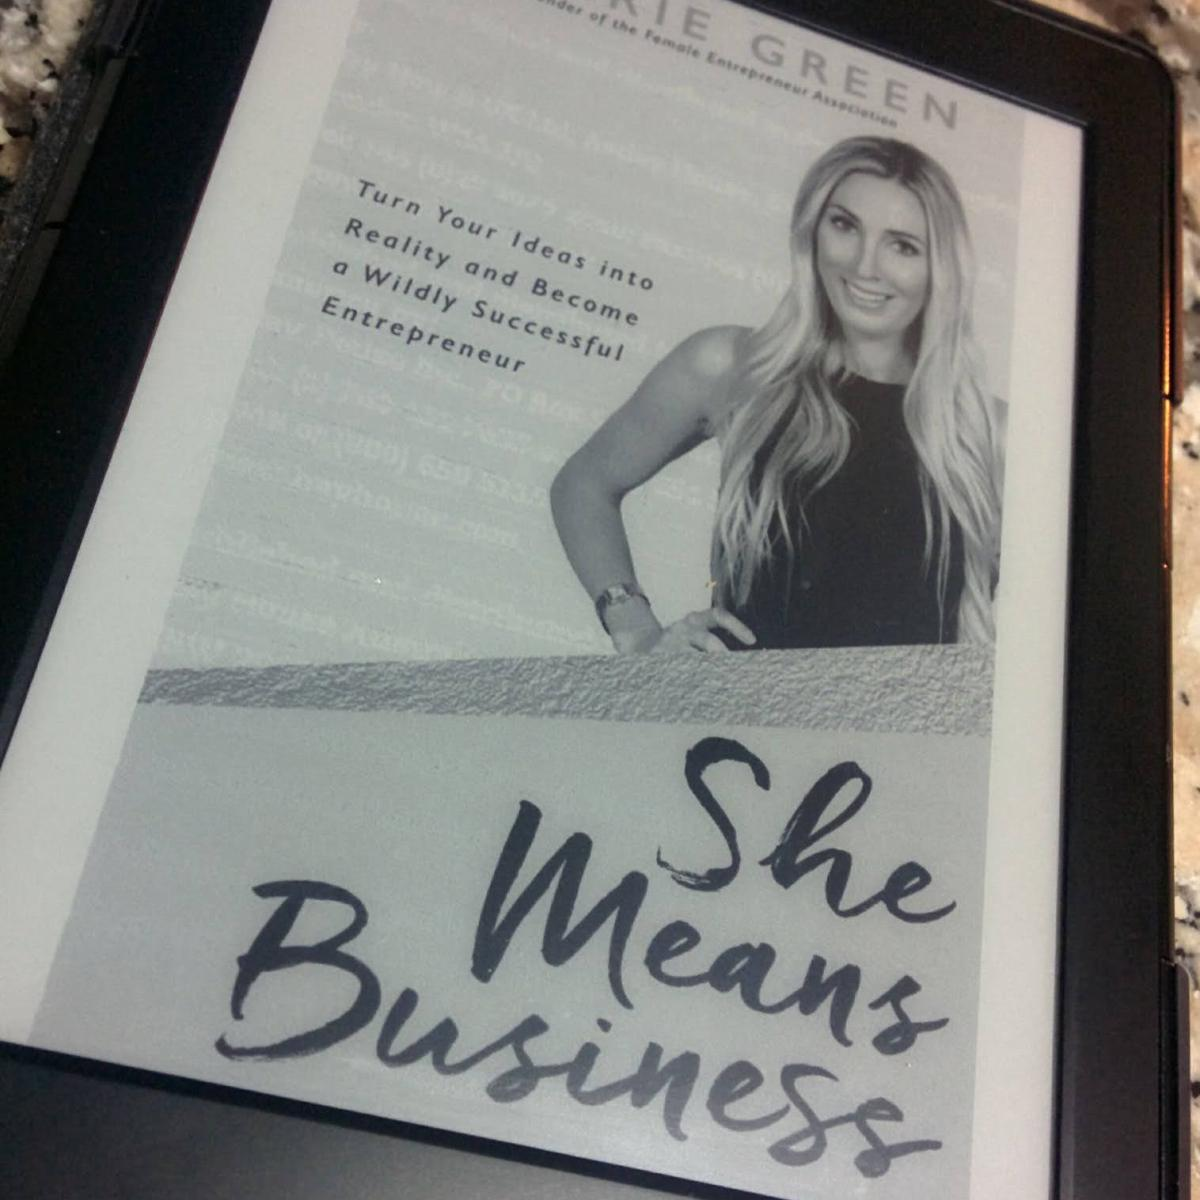 She Means Business by Carrie Green - Book review